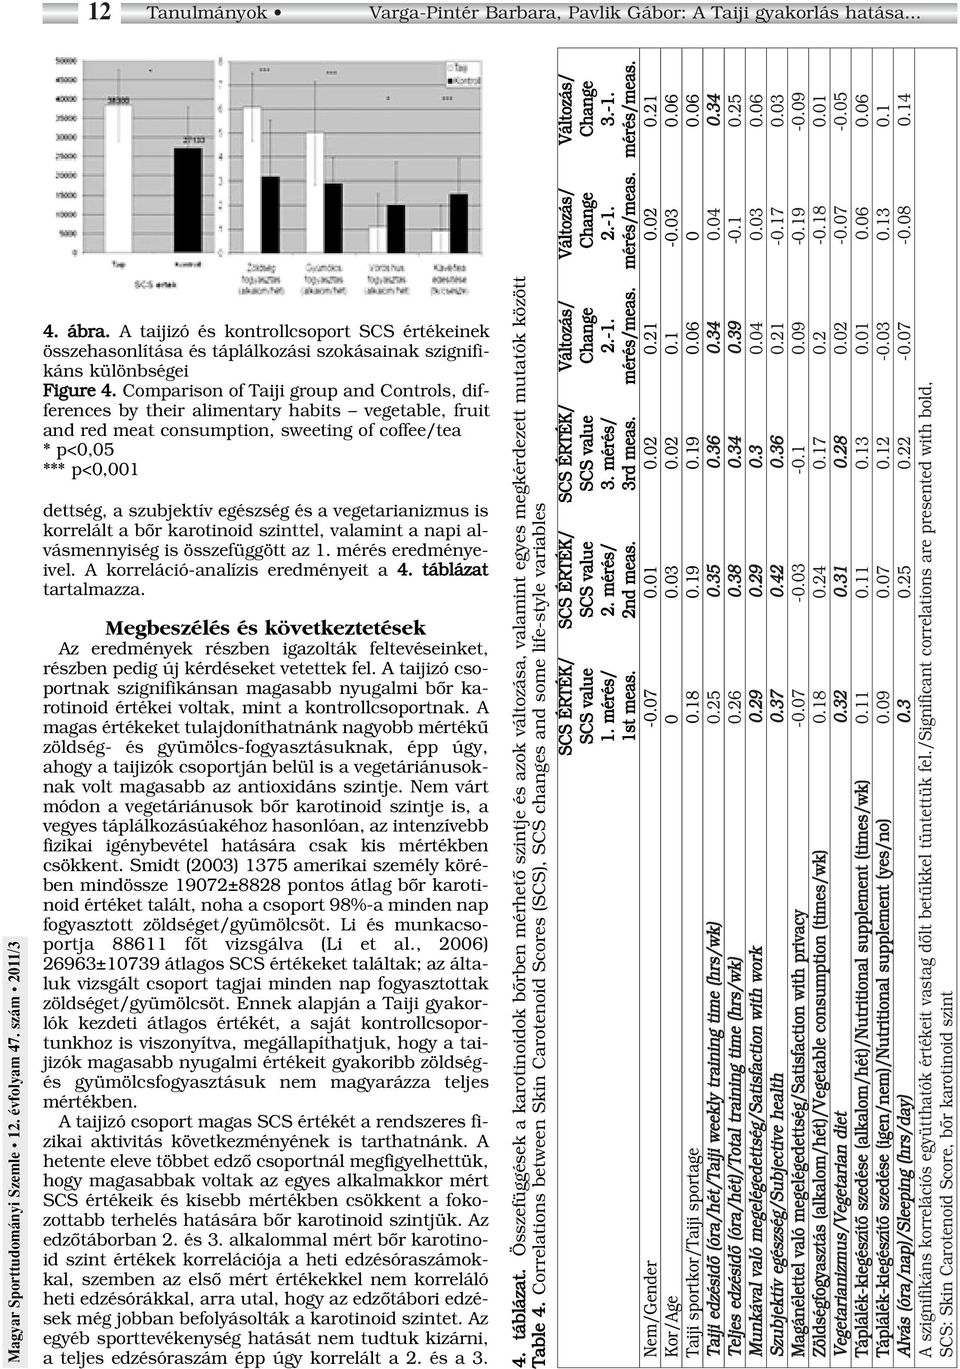 Comparison of Taiji group and Controls, differences by their alimentary habits vegetable, fruit and red meat consumption, sweeting of coffee/tea * p<0,05 *** p<0,001 dettség, a szubjektív egészség és